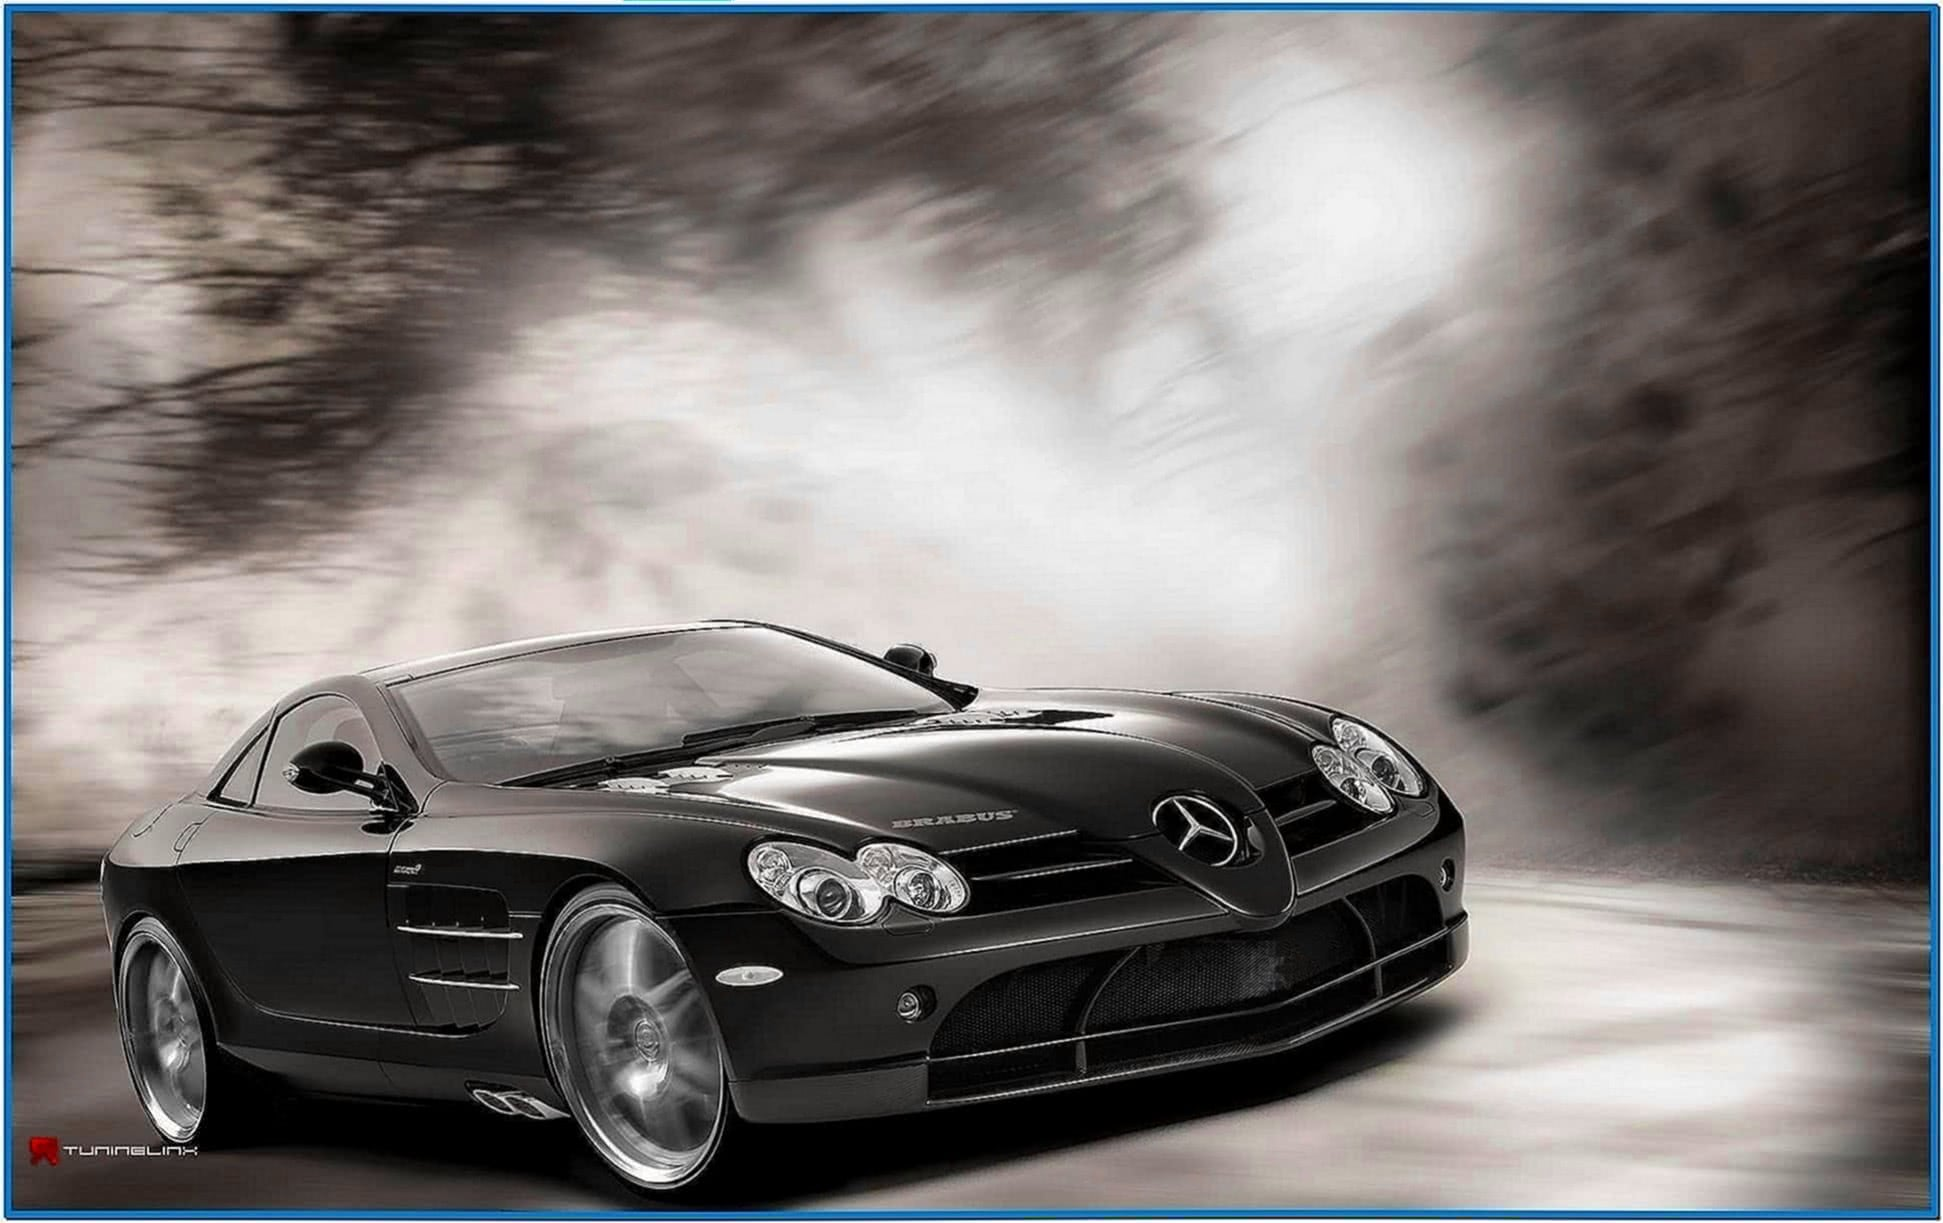 Mercedes Slr Mclaren Screensaver